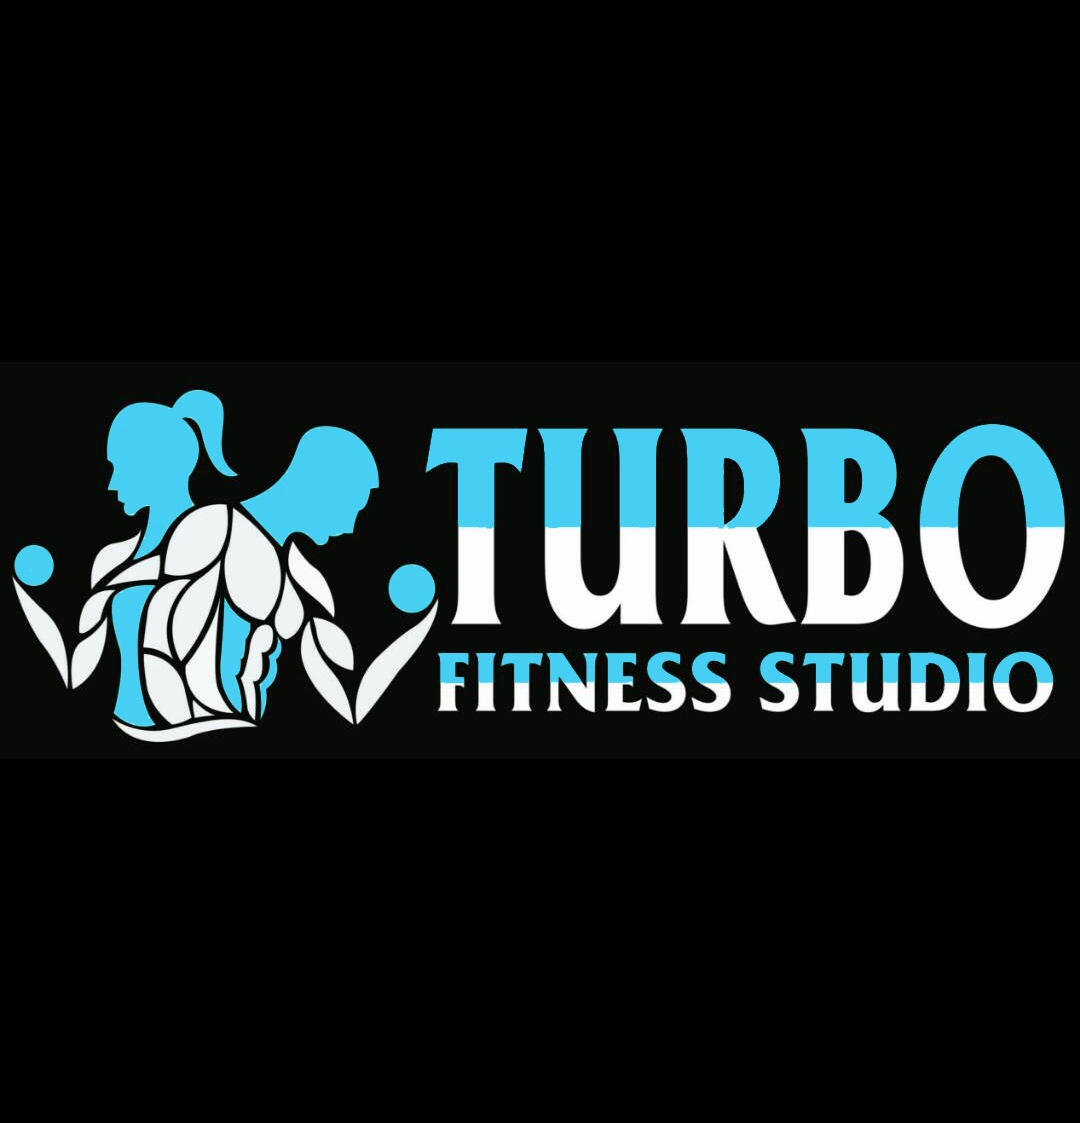 Turbo Fitness Studio